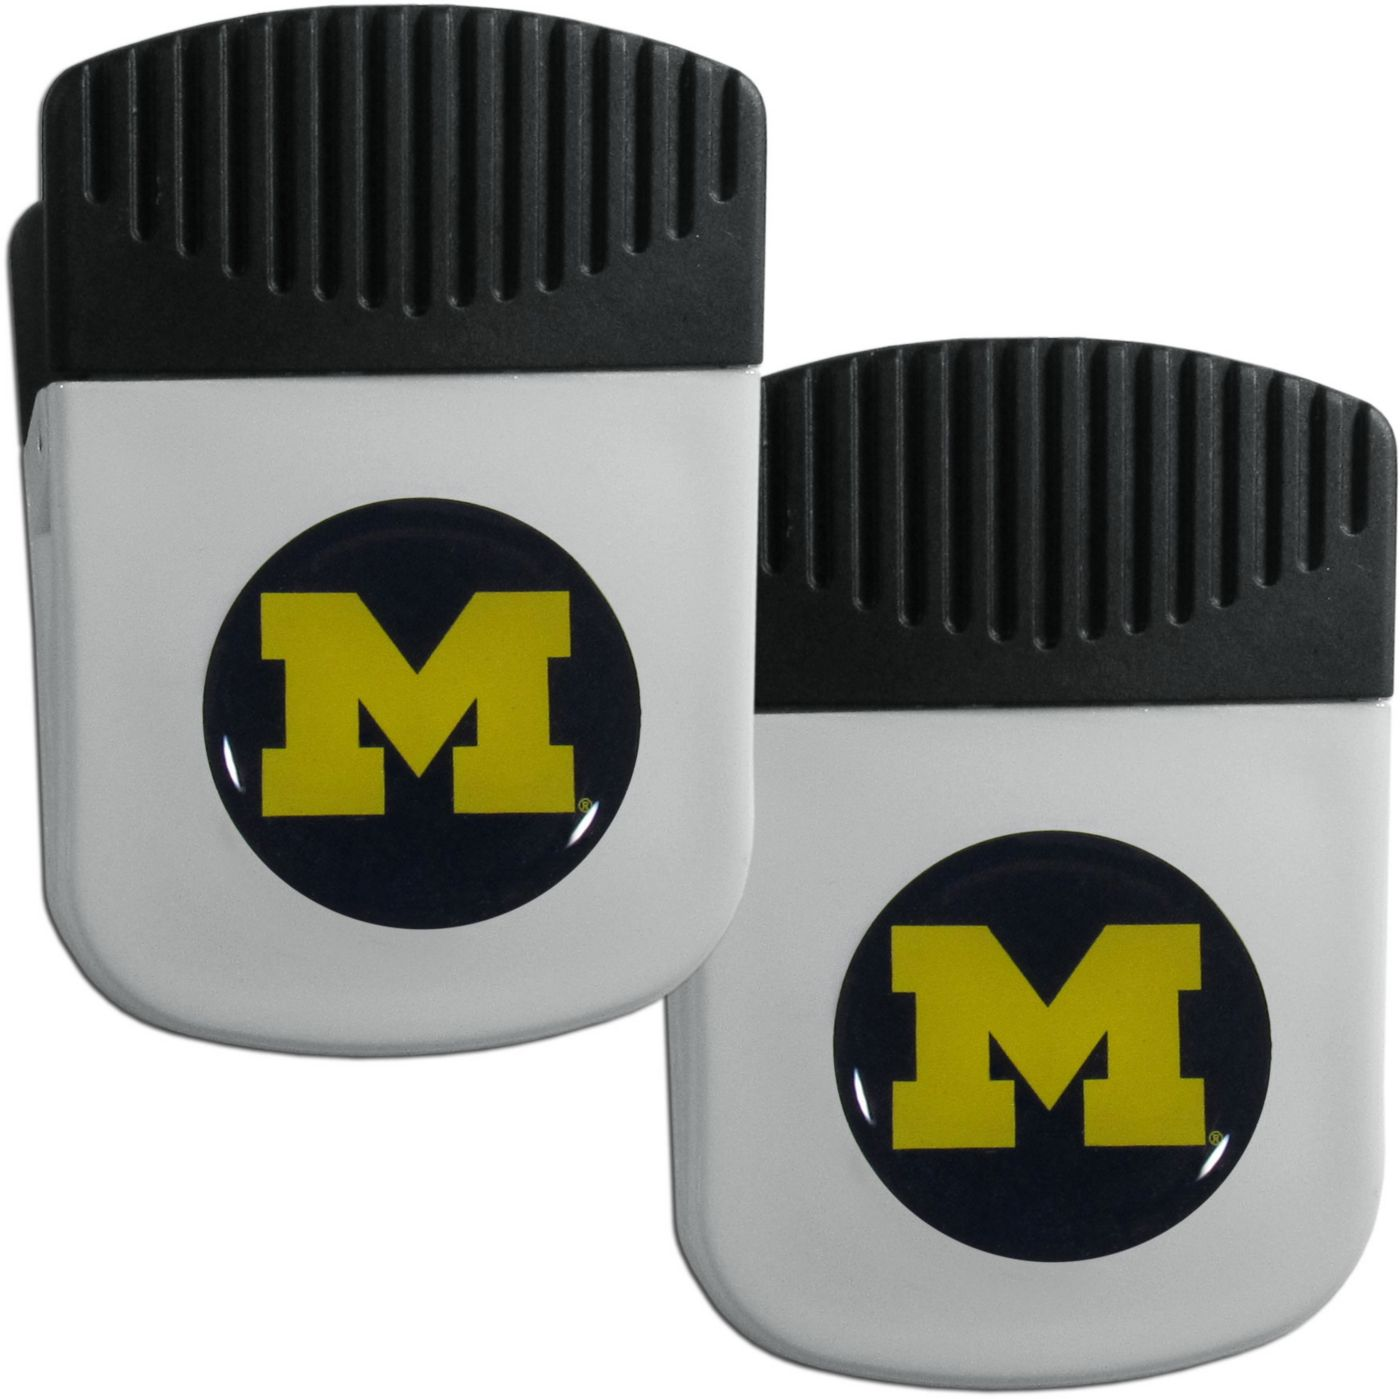 Michigan Wolverines Chip Clip Magnet and Bottle Opener 2 Pack